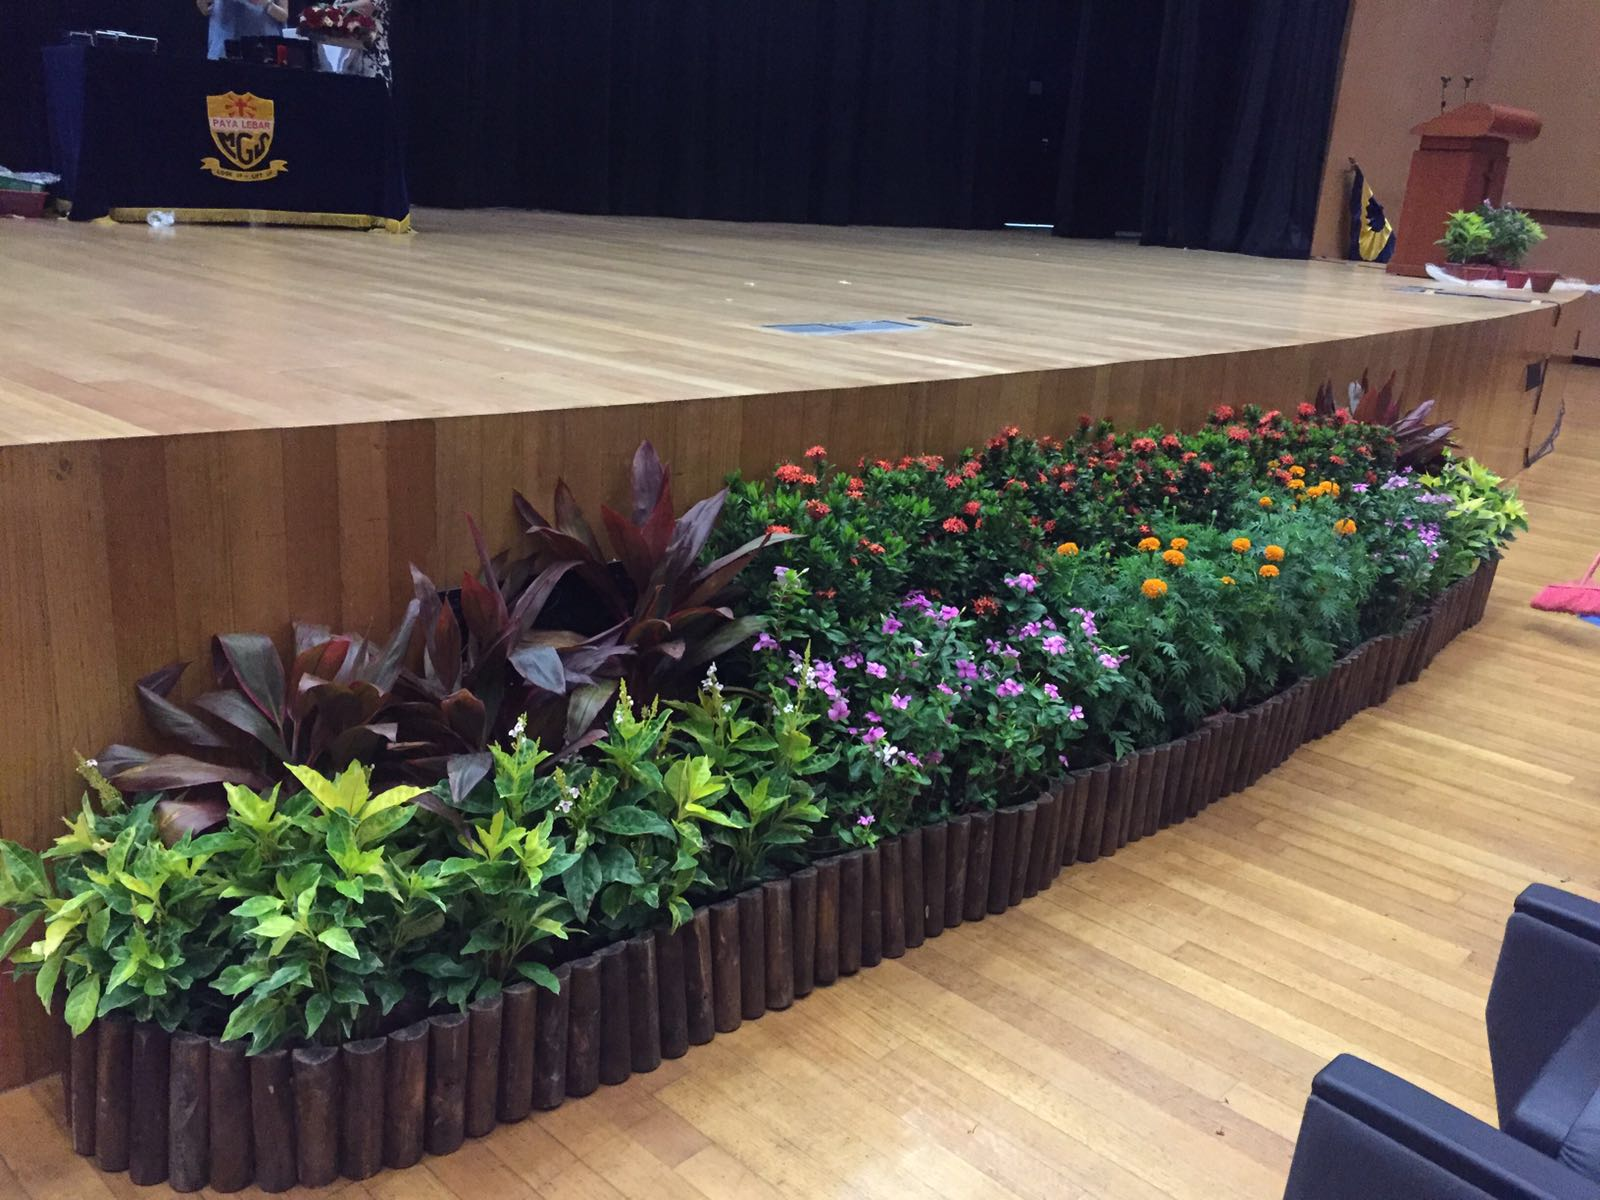 Stage Front Grouping with Wooden Skirting